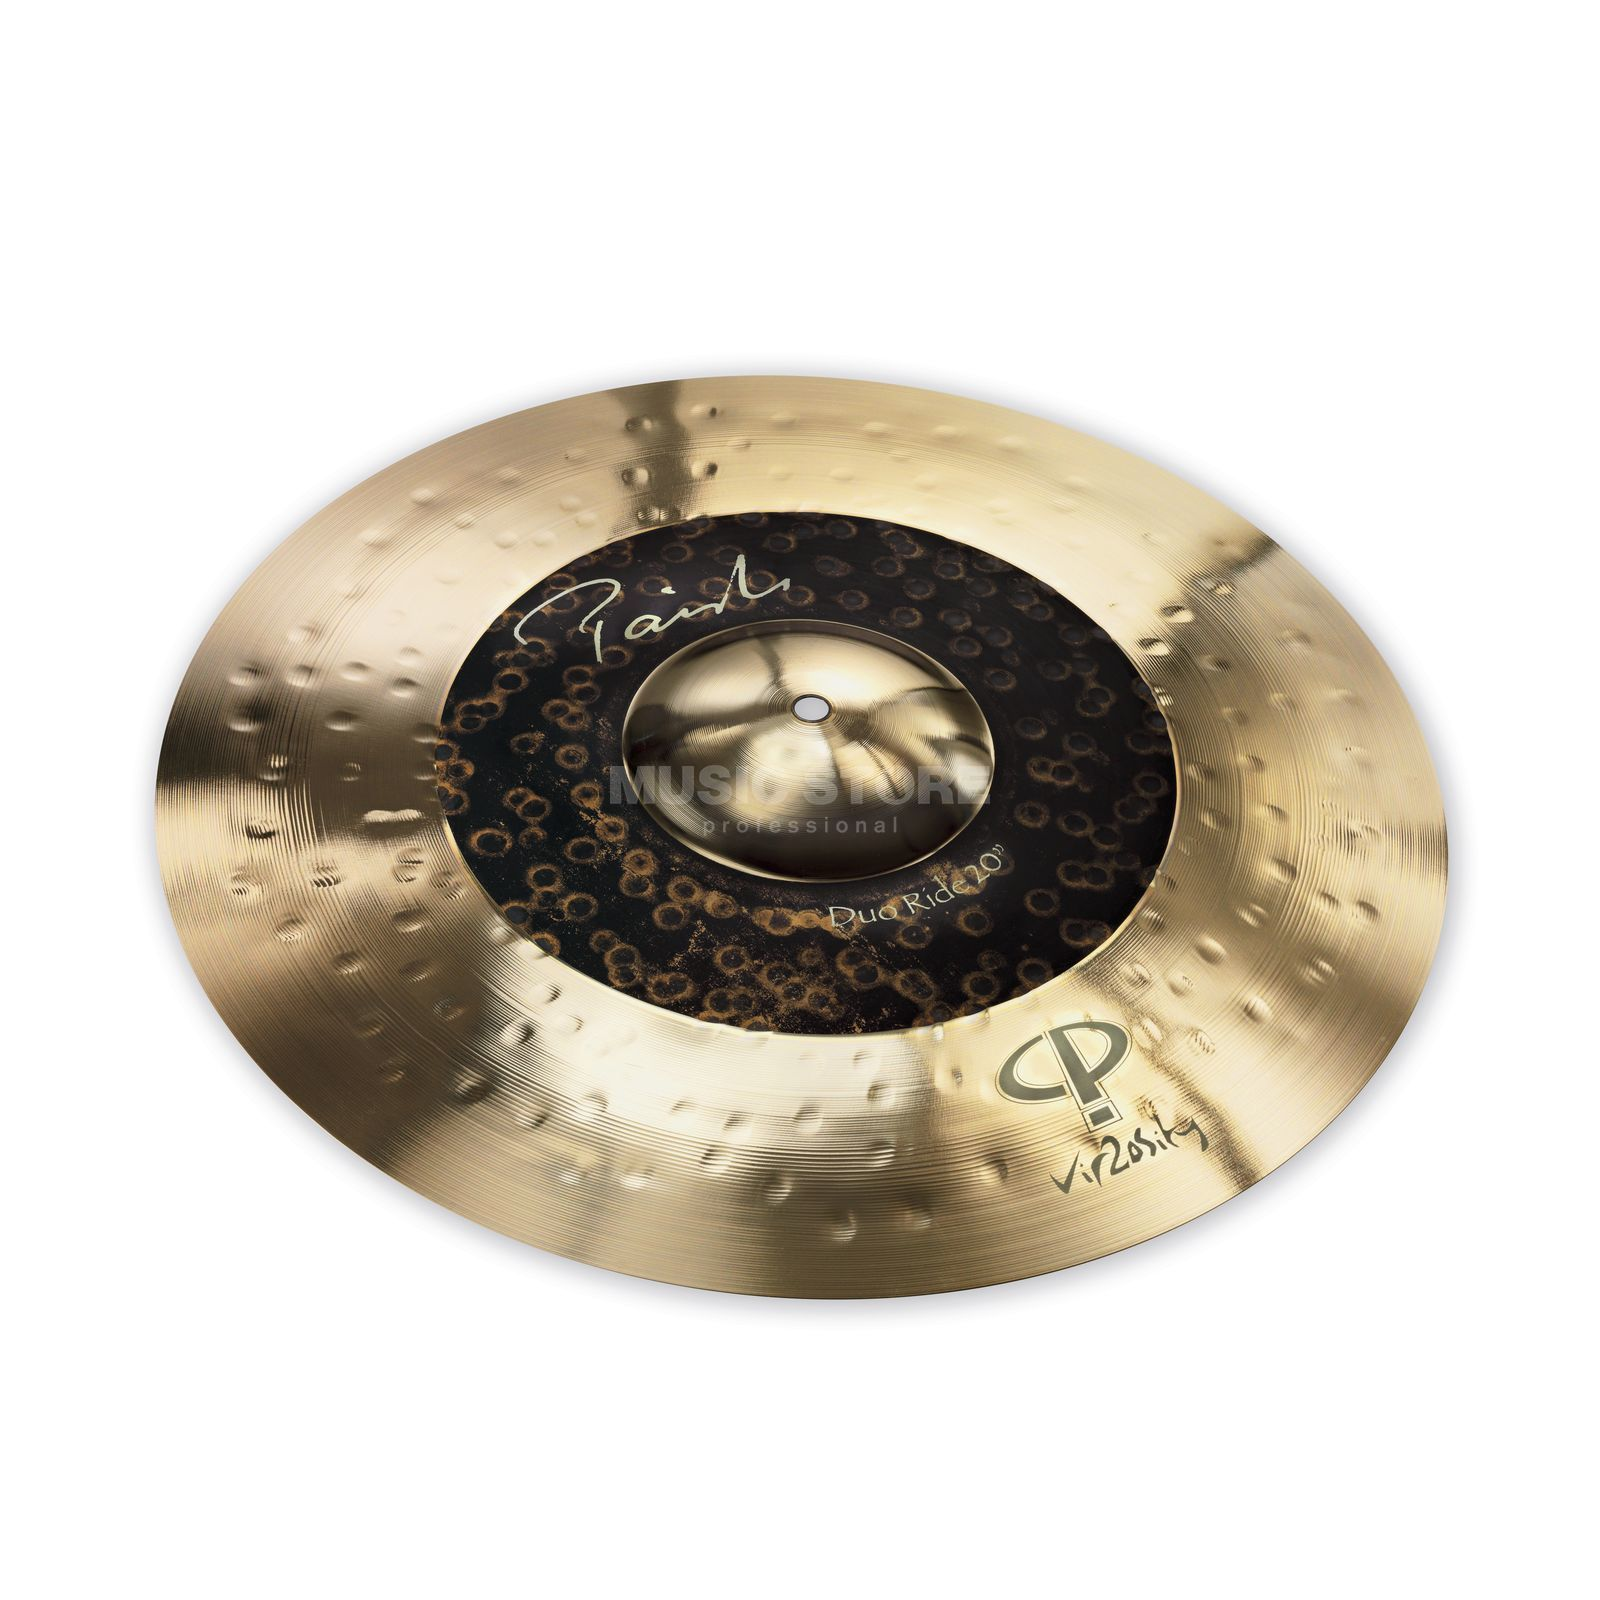 "Paiste Signature Duo Ride, 20"" Vir2osity Product Image"